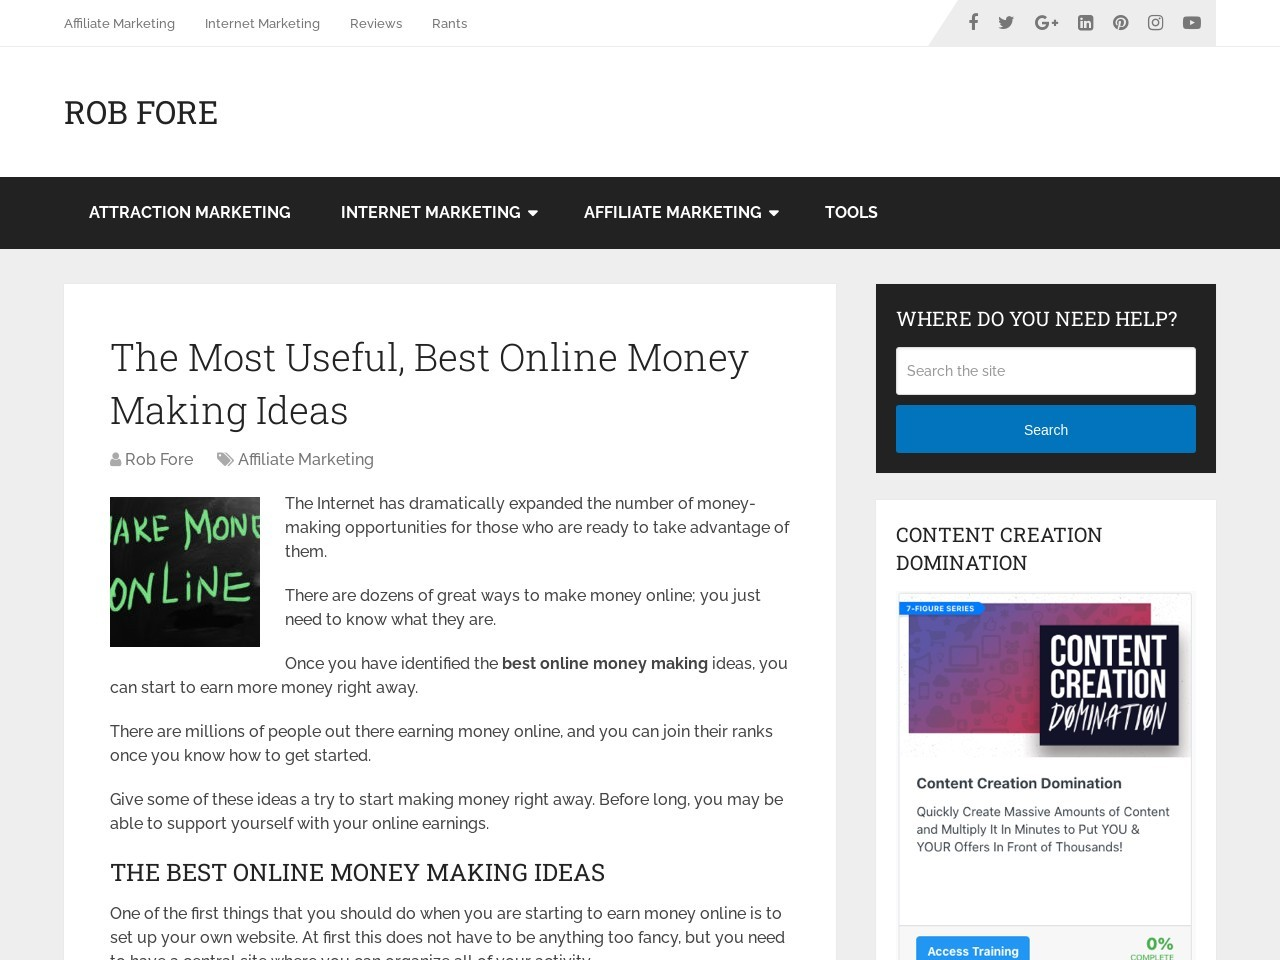 The Most Useful, Best Online Money Making Ideas